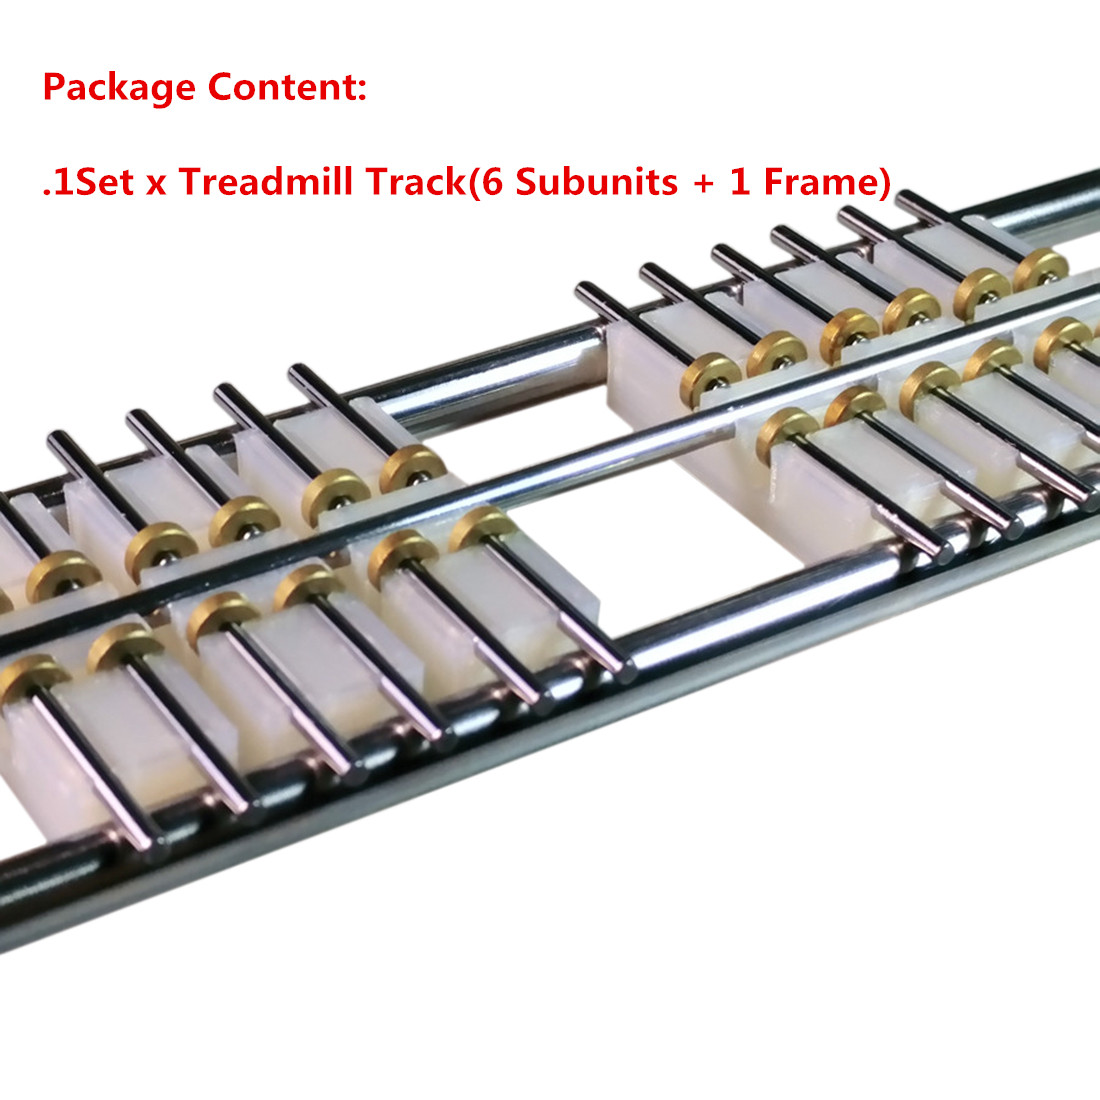 6Pcs 50cm 1:160 Model Train N Scale DIY Accessories Treadmill Track without Connecting Line for N Scale Model of Most Brands image